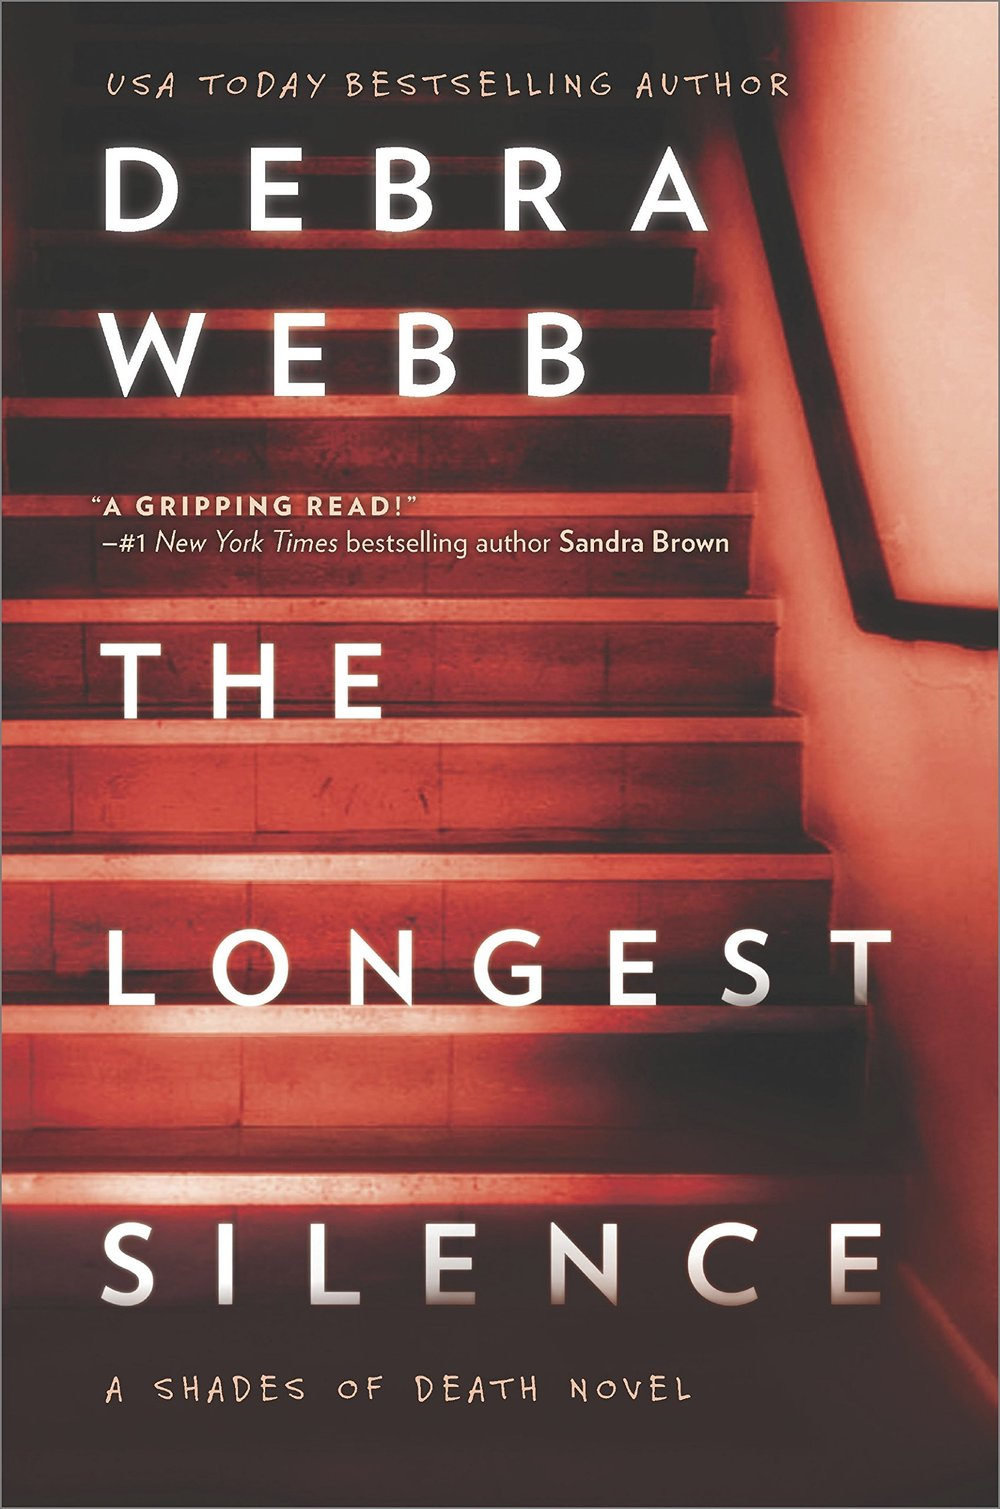 The-Longest-Silence-by-Debra-Webb-Cover.jpg